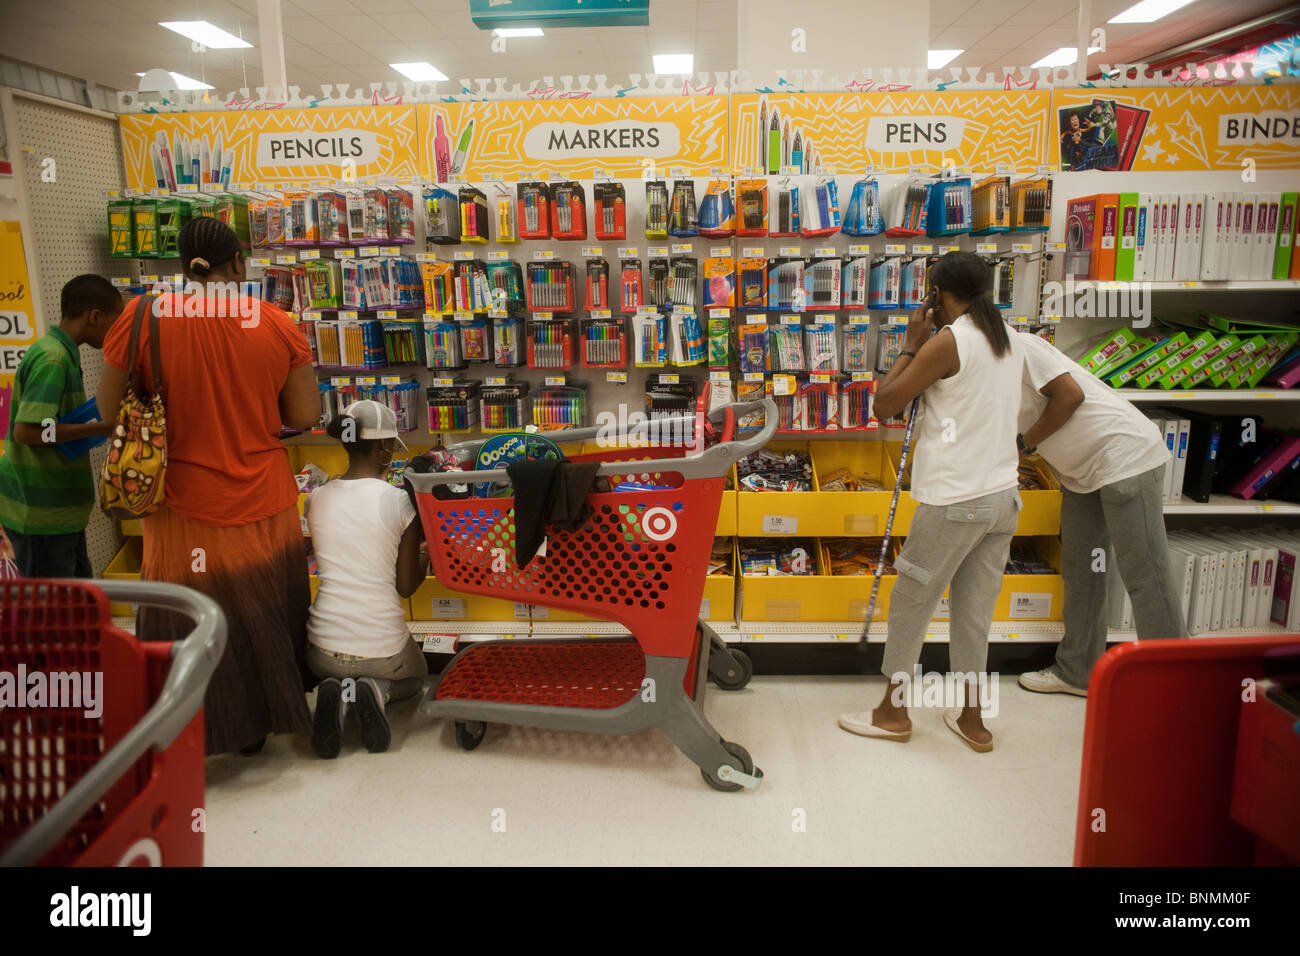 shoppers at the back to school supplies in the new target store in stock photo 30572879 alamy. Black Bedroom Furniture Sets. Home Design Ideas